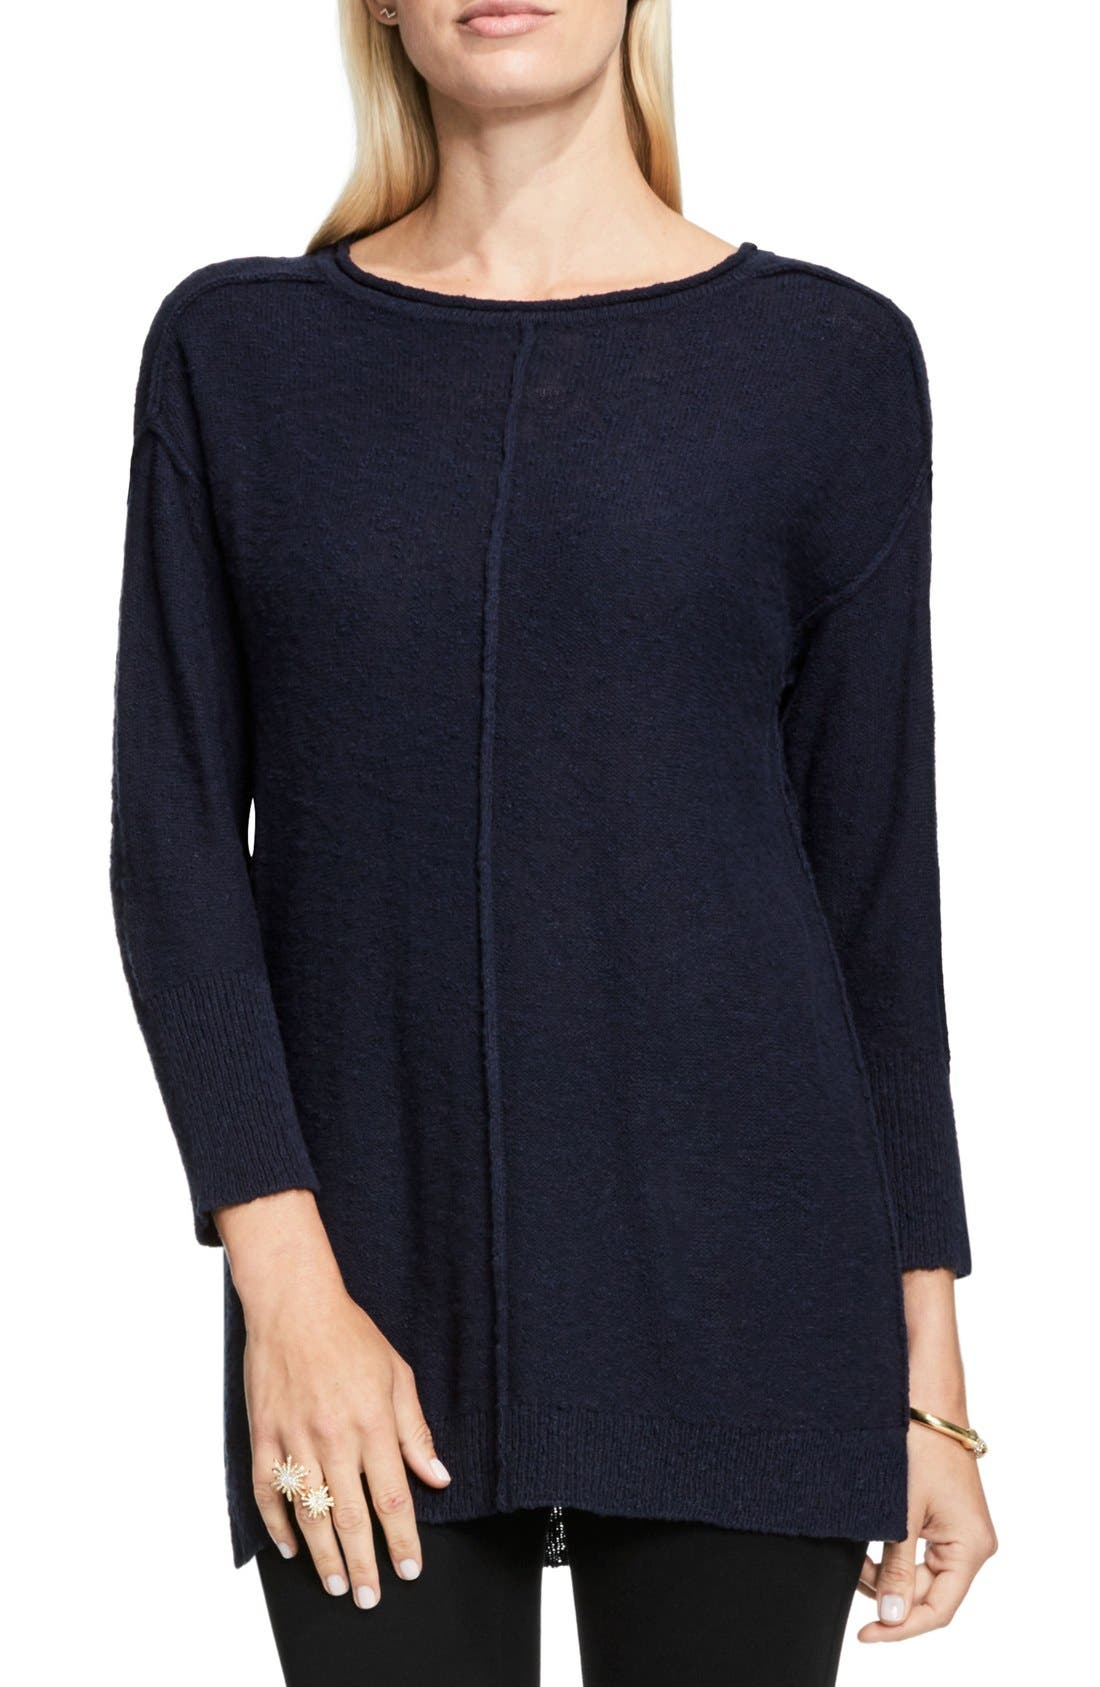 Main Image - Two by Vince Camuto Exposed Seam Sweater